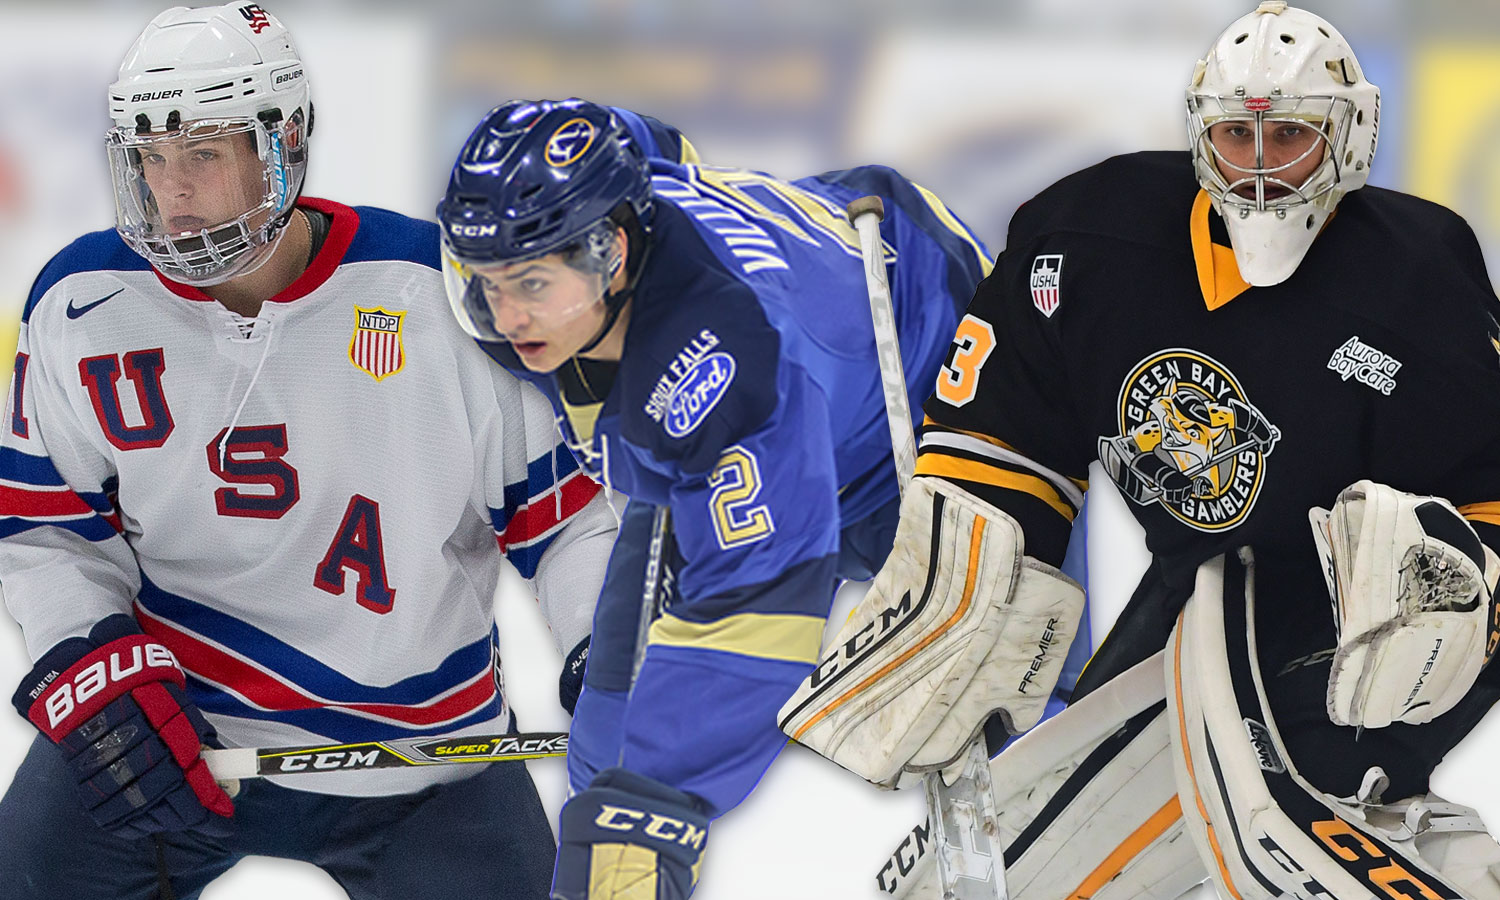 USHL: Players Of The Week - Week 1